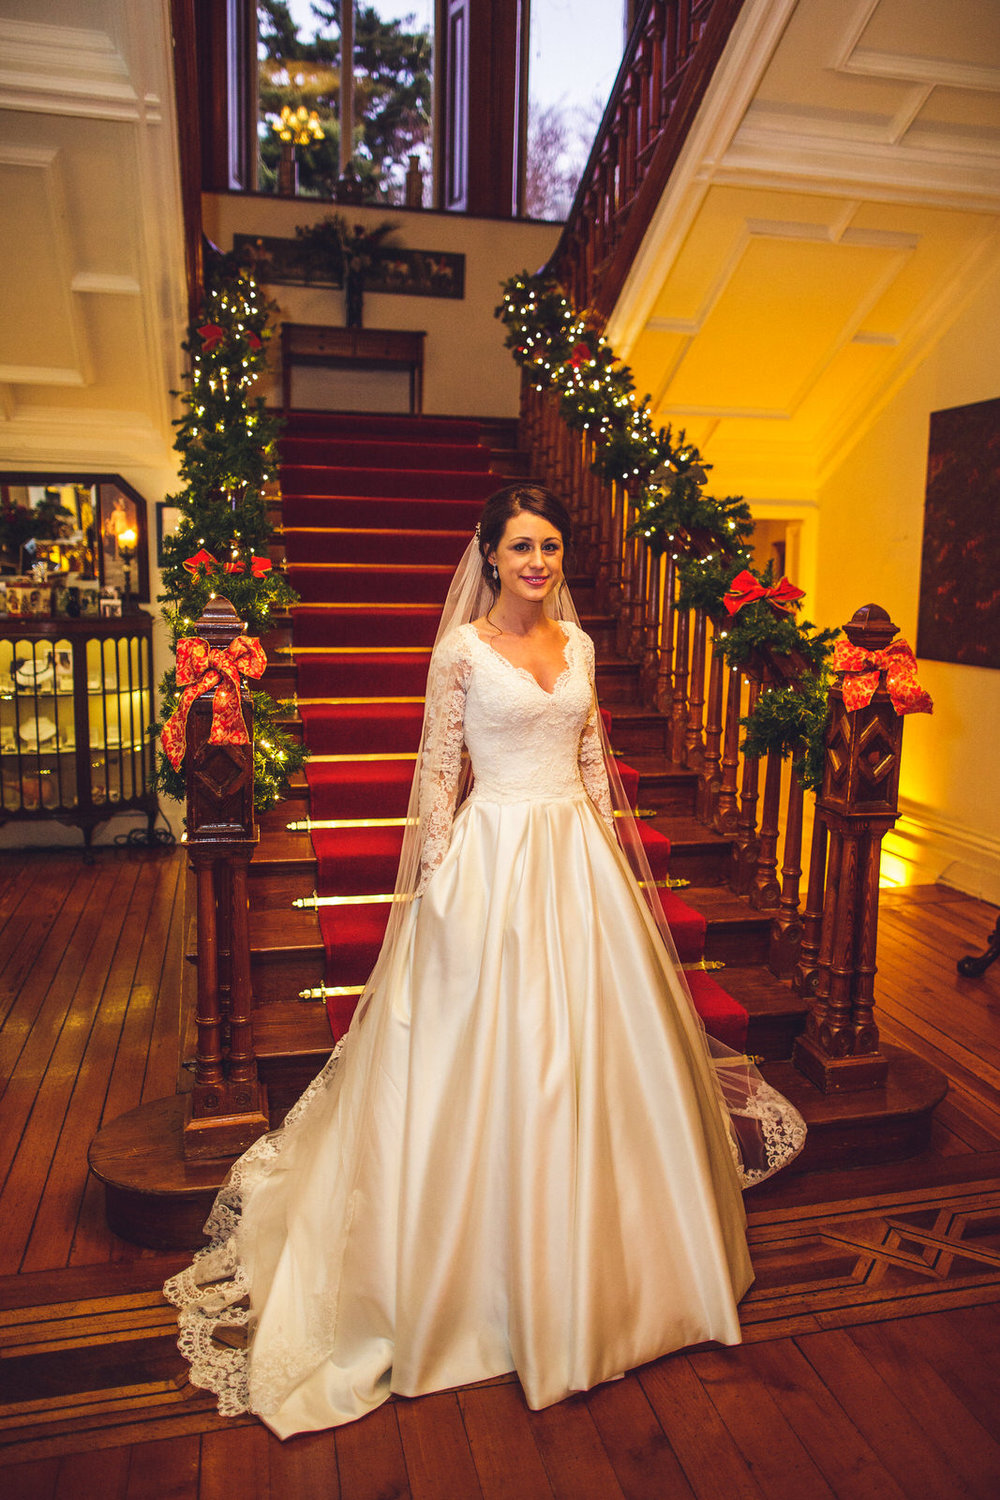 wicklow-tinakilly-wedding-photographer-roger-kenny_140.jpg